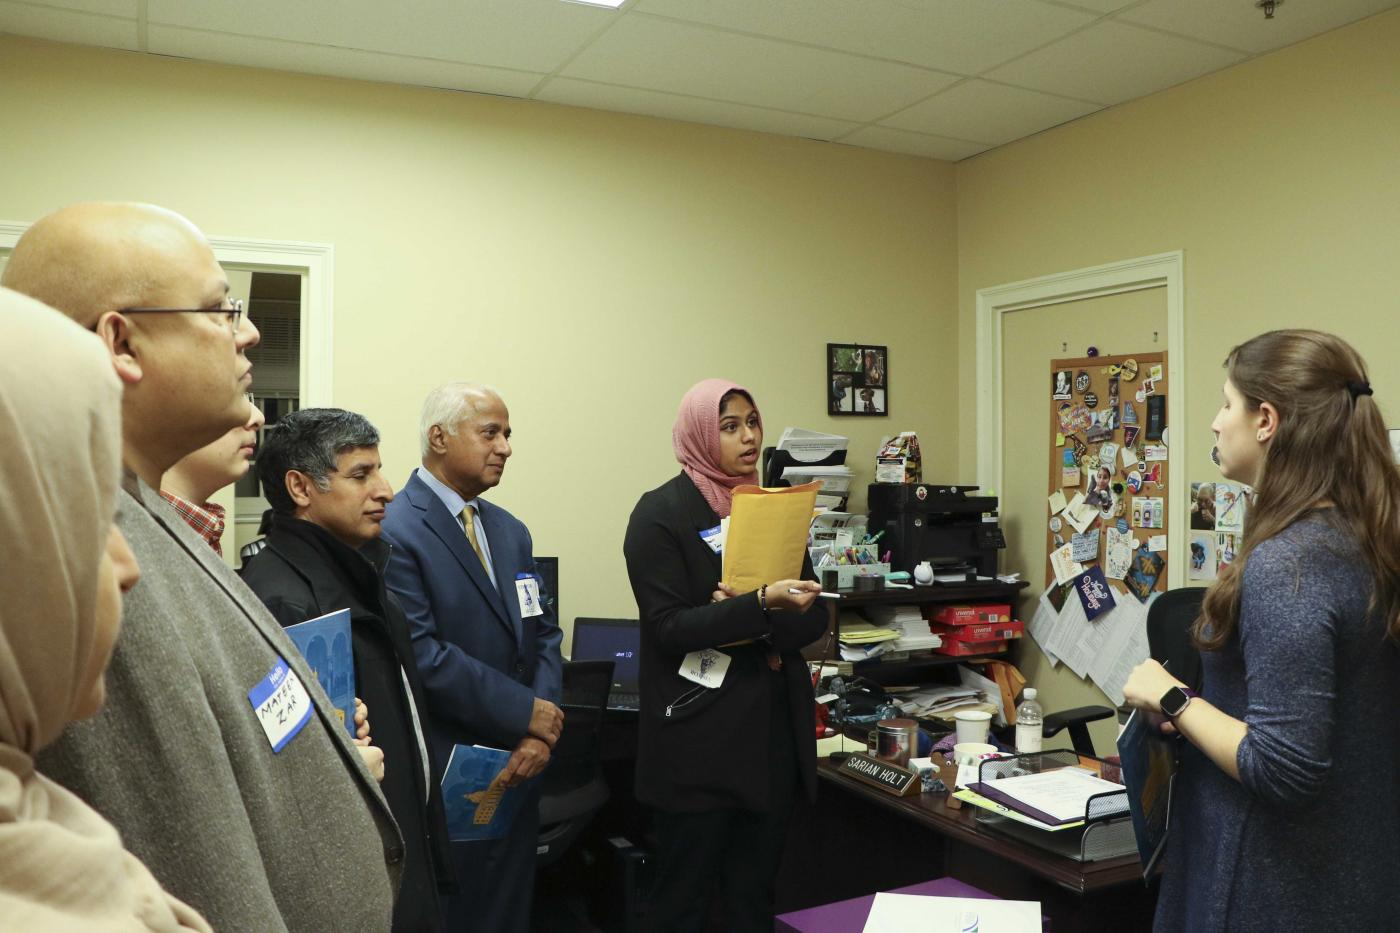 'We Want Our Voices Heard': Muslims in Maryland Showcase Power of Door-To-Door Lobbying